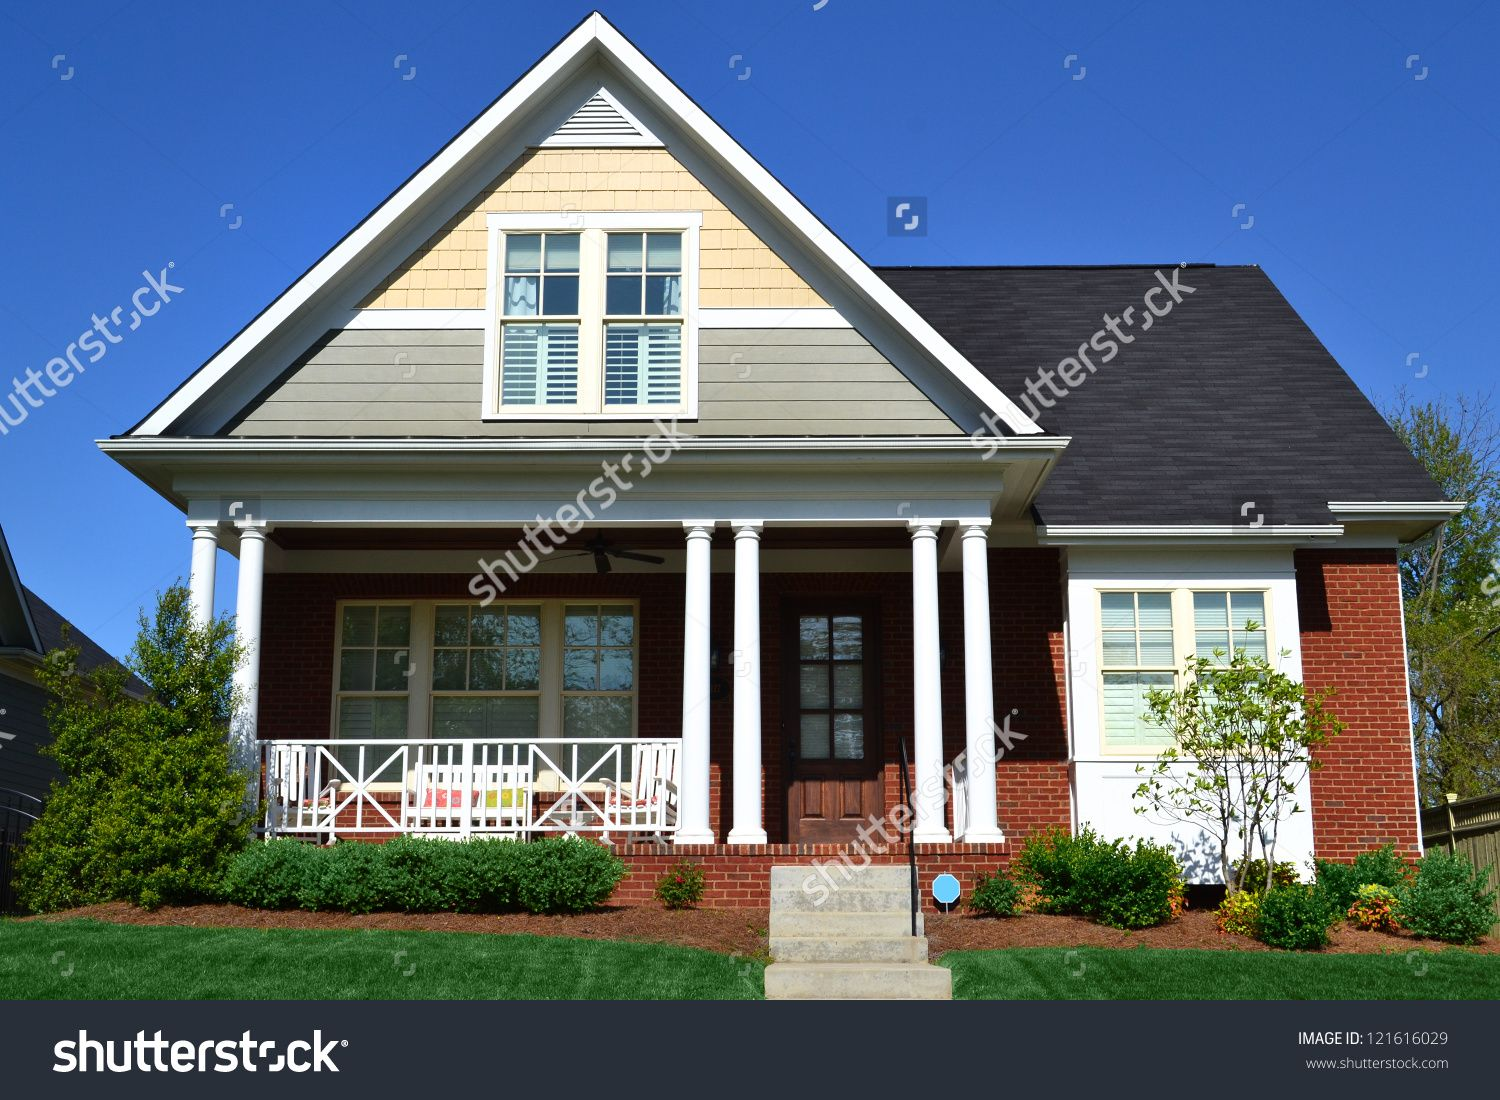 Cape Cod Front Porch Ideas Part - 21: Taupe, Yellow, And Brick Cape Cod American Home With Front Porch - Buy This  Stock Photo On Shutterstock U0026 Find Other Images.